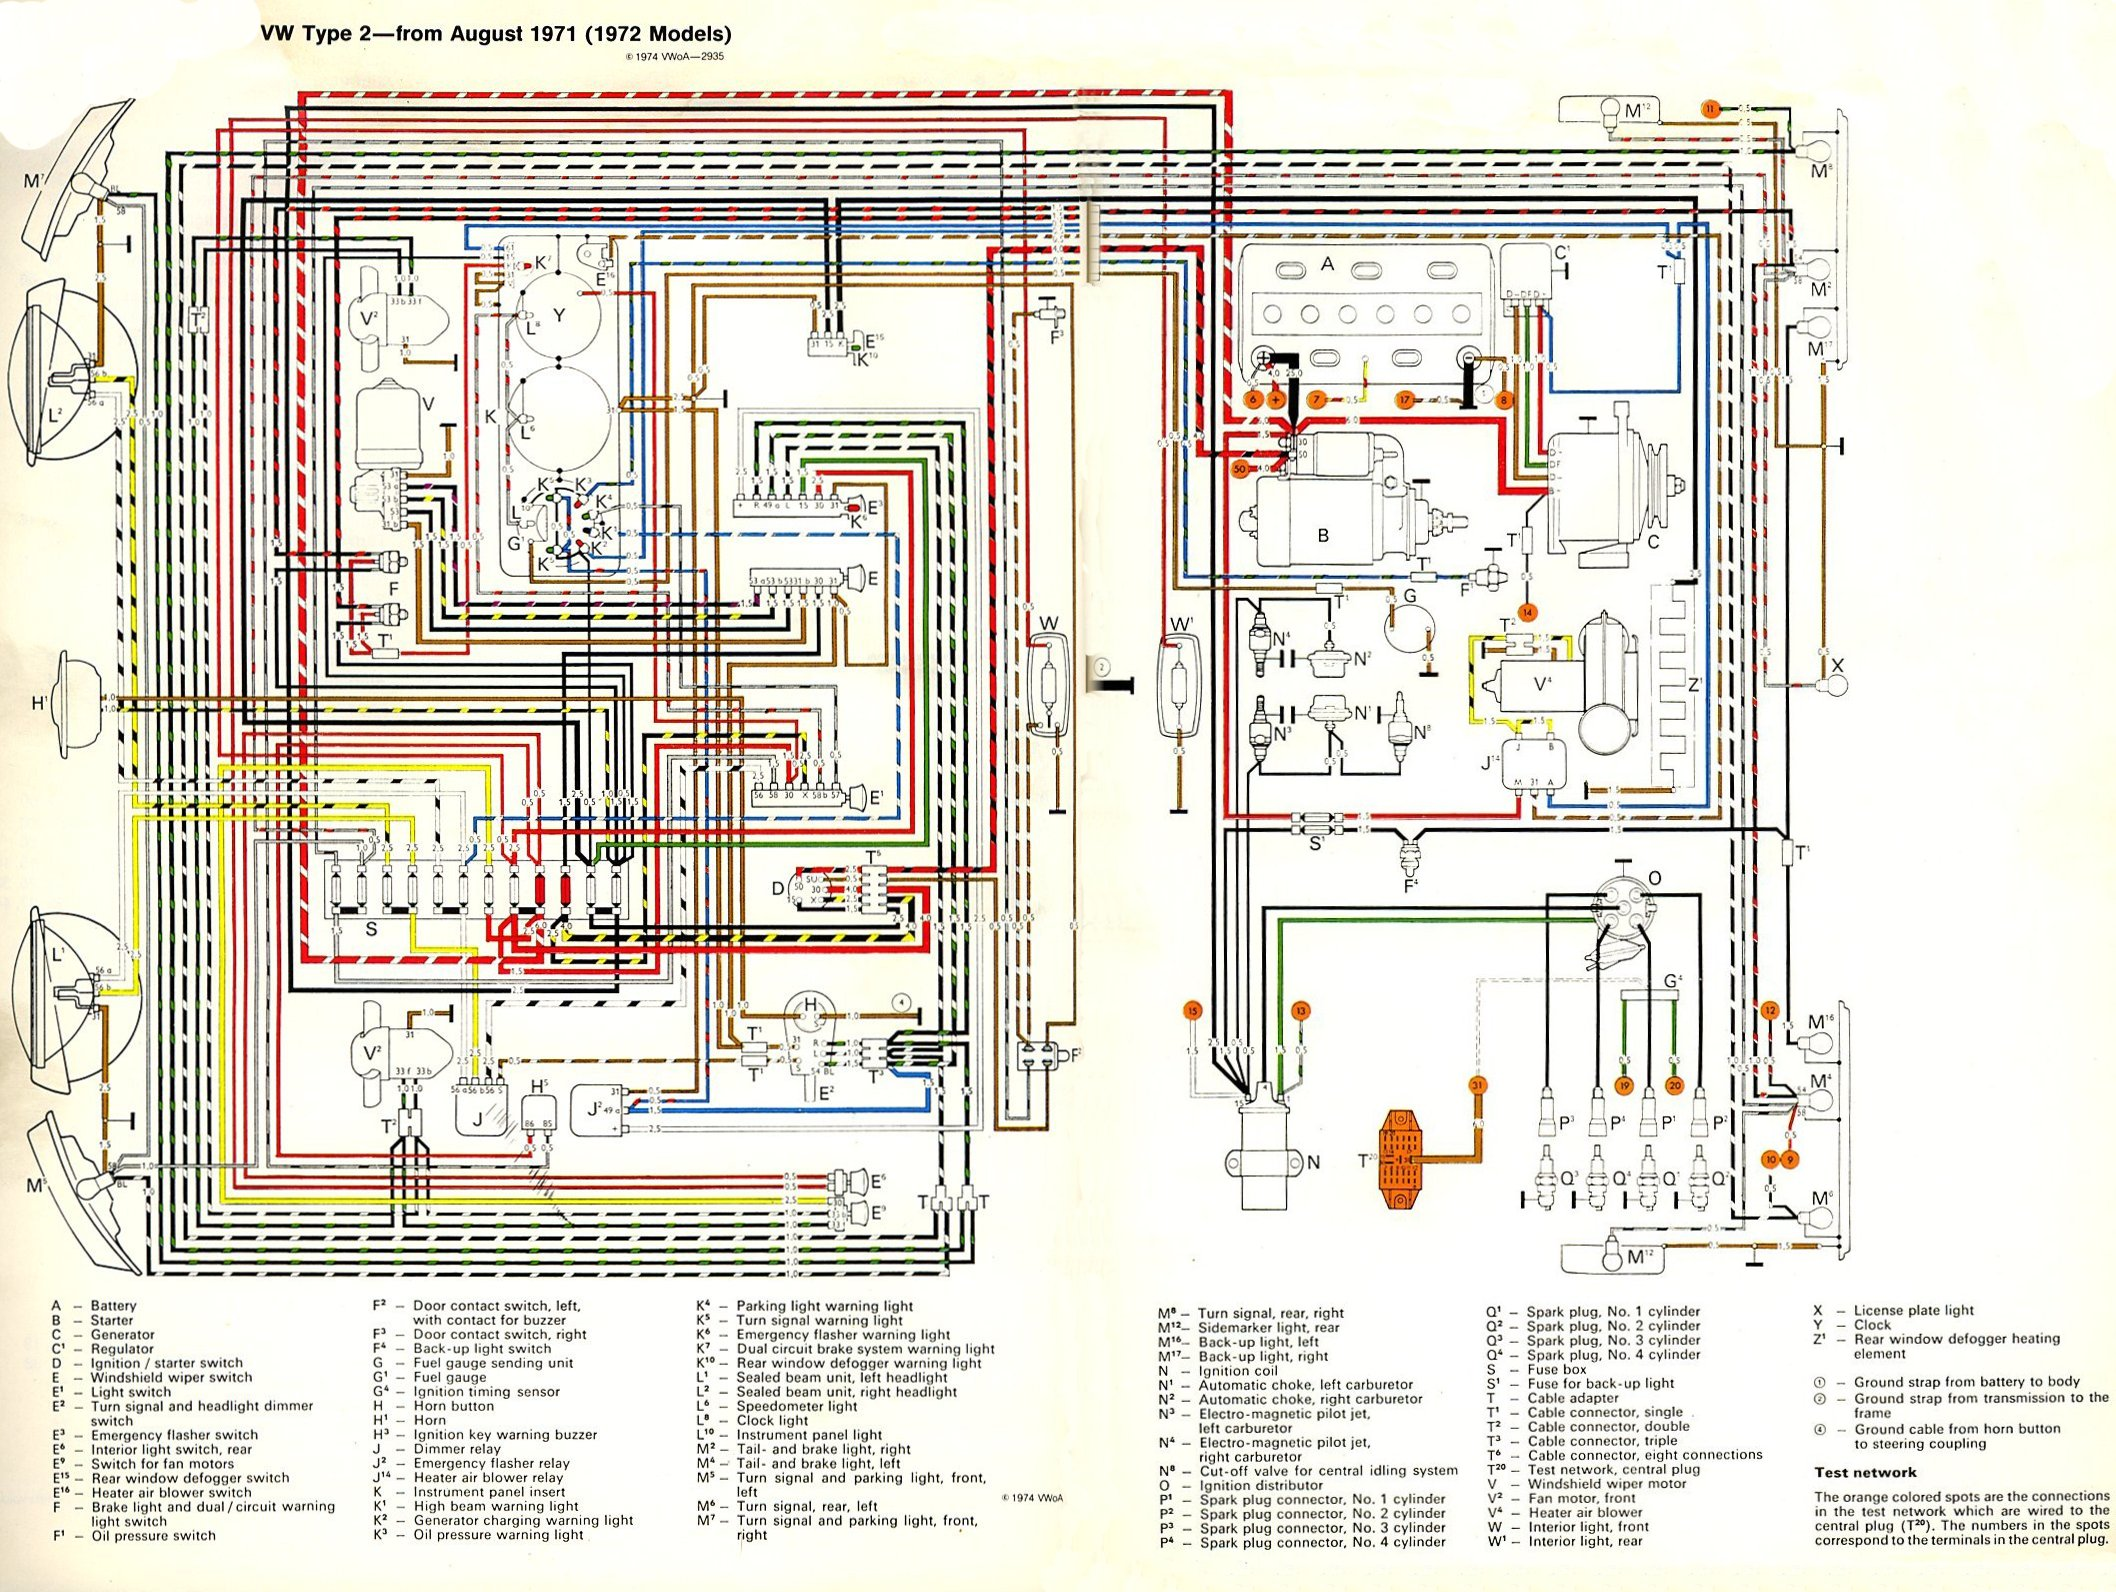 bus_1972_wiring wiring diagram for 1971 vw bus readingrat net 1971 vw bus wiring diagram at honlapkeszites.co